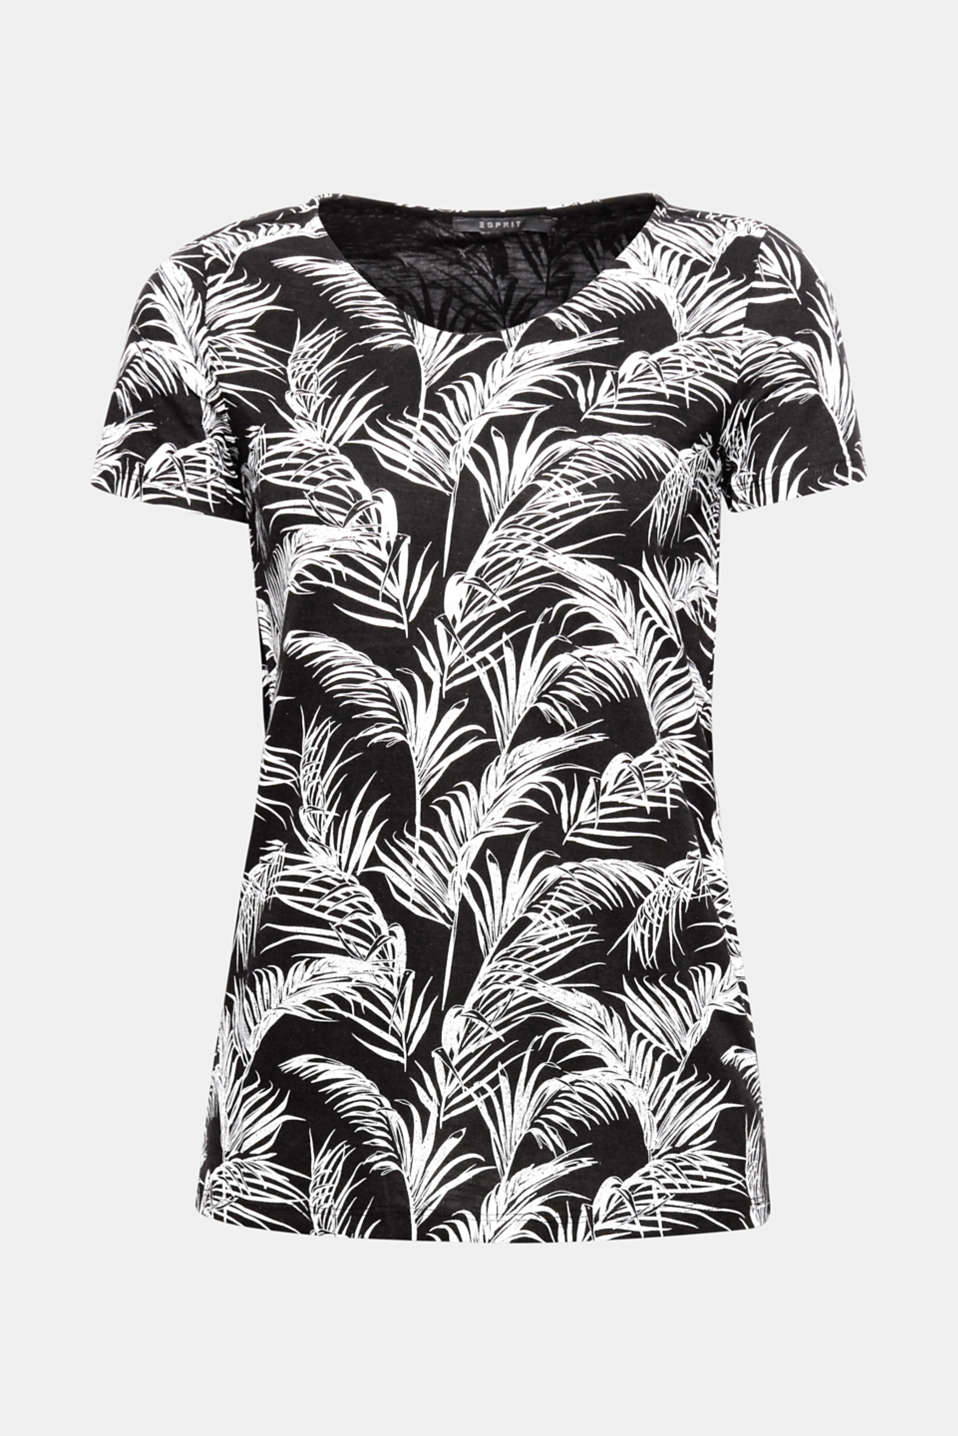 Palm prints are on trend and have a summery and elegant look thanks to the subtle glitter finish on this slub T-shirt with an airy texture!